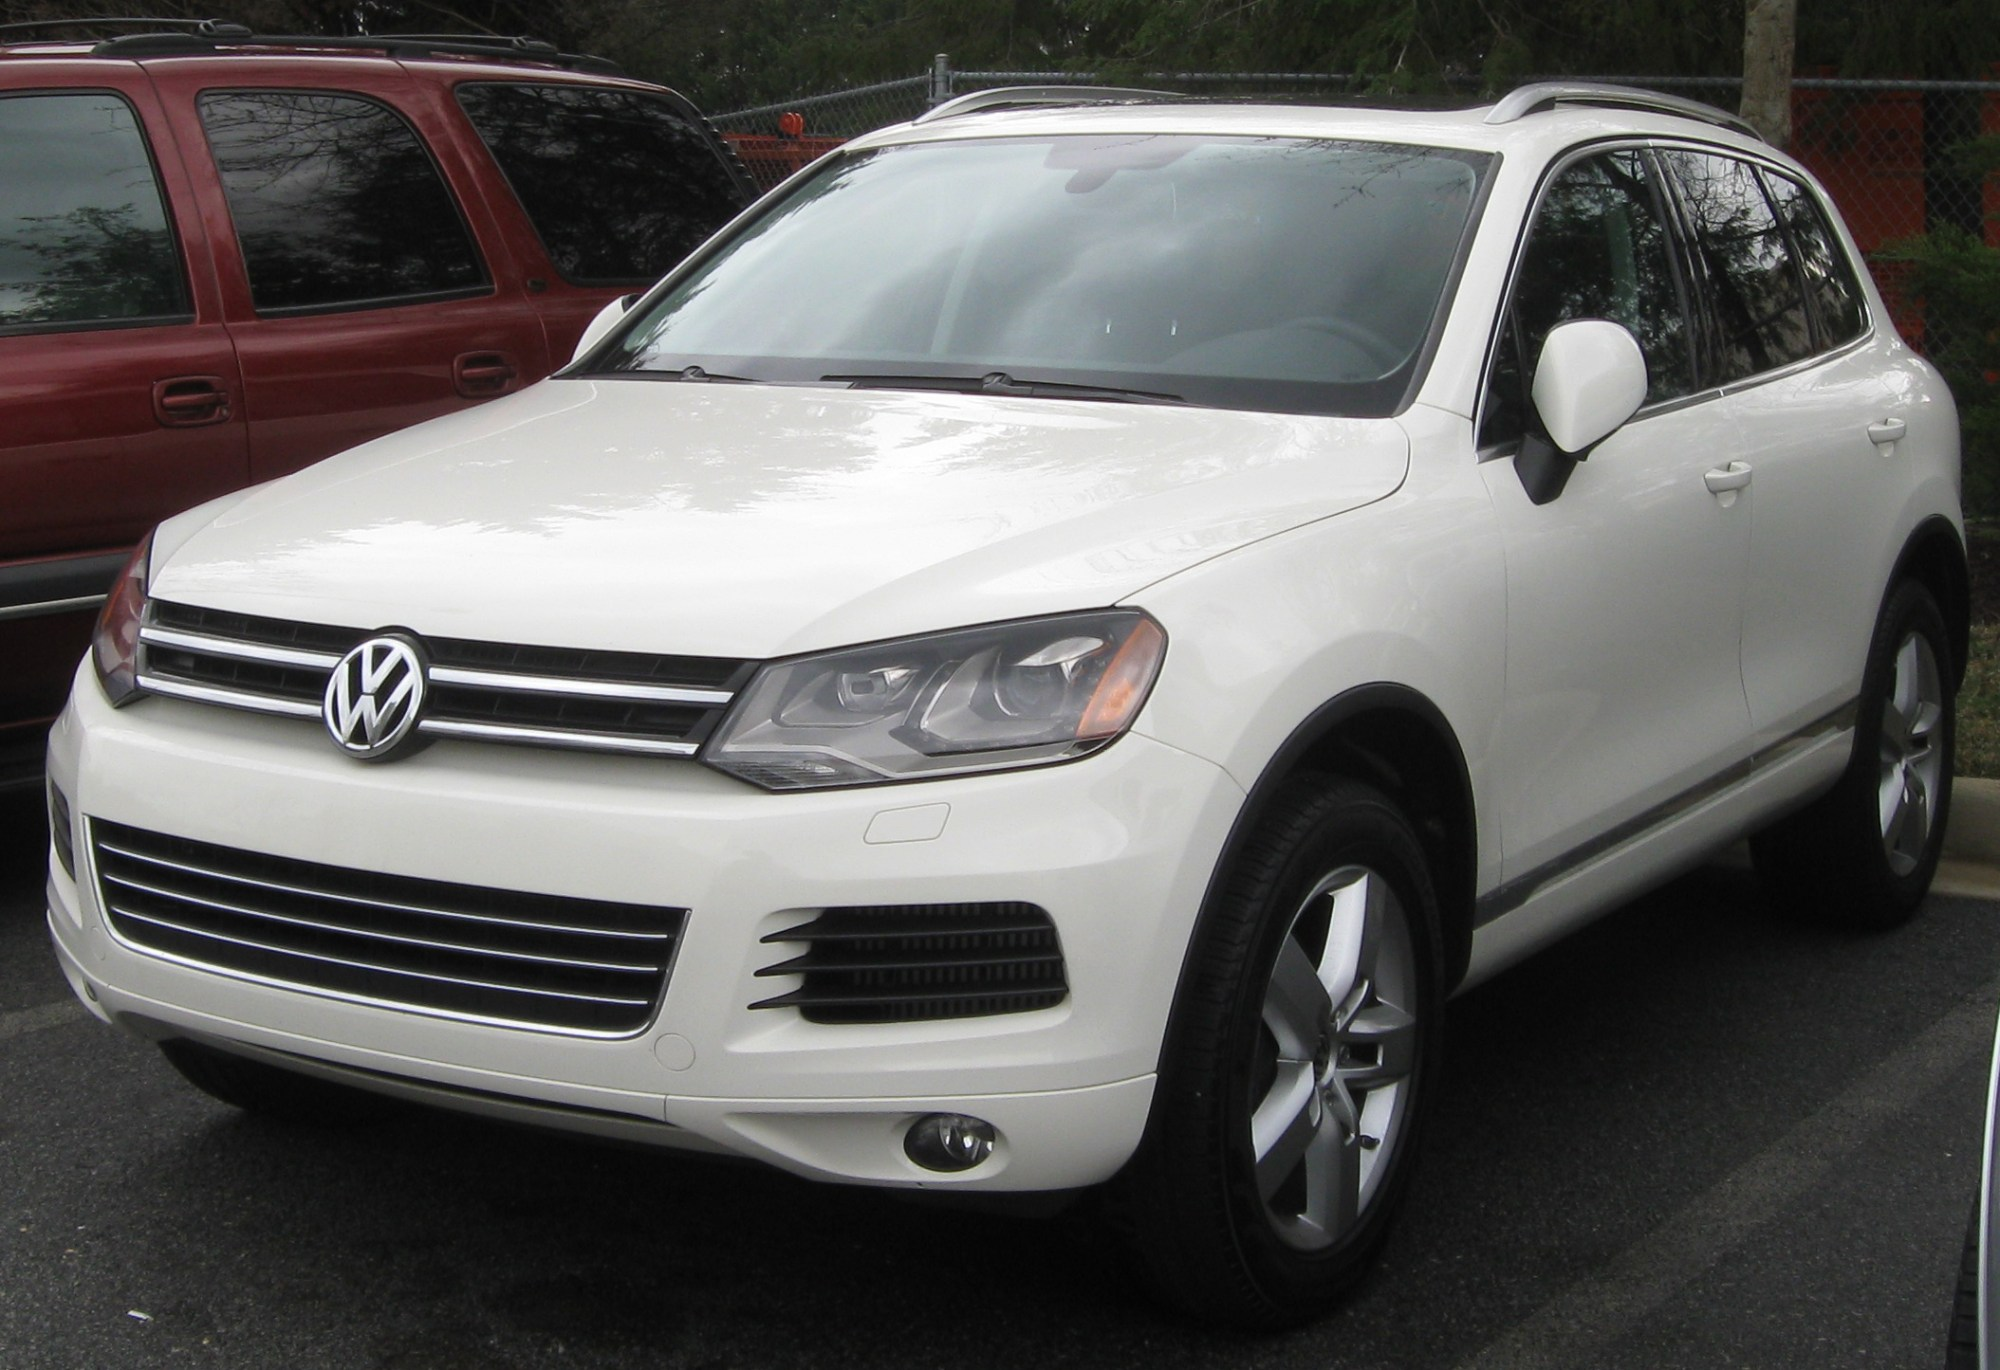 hight resolution of file 2011 volkswagen touareg 04 01 2011 jpg